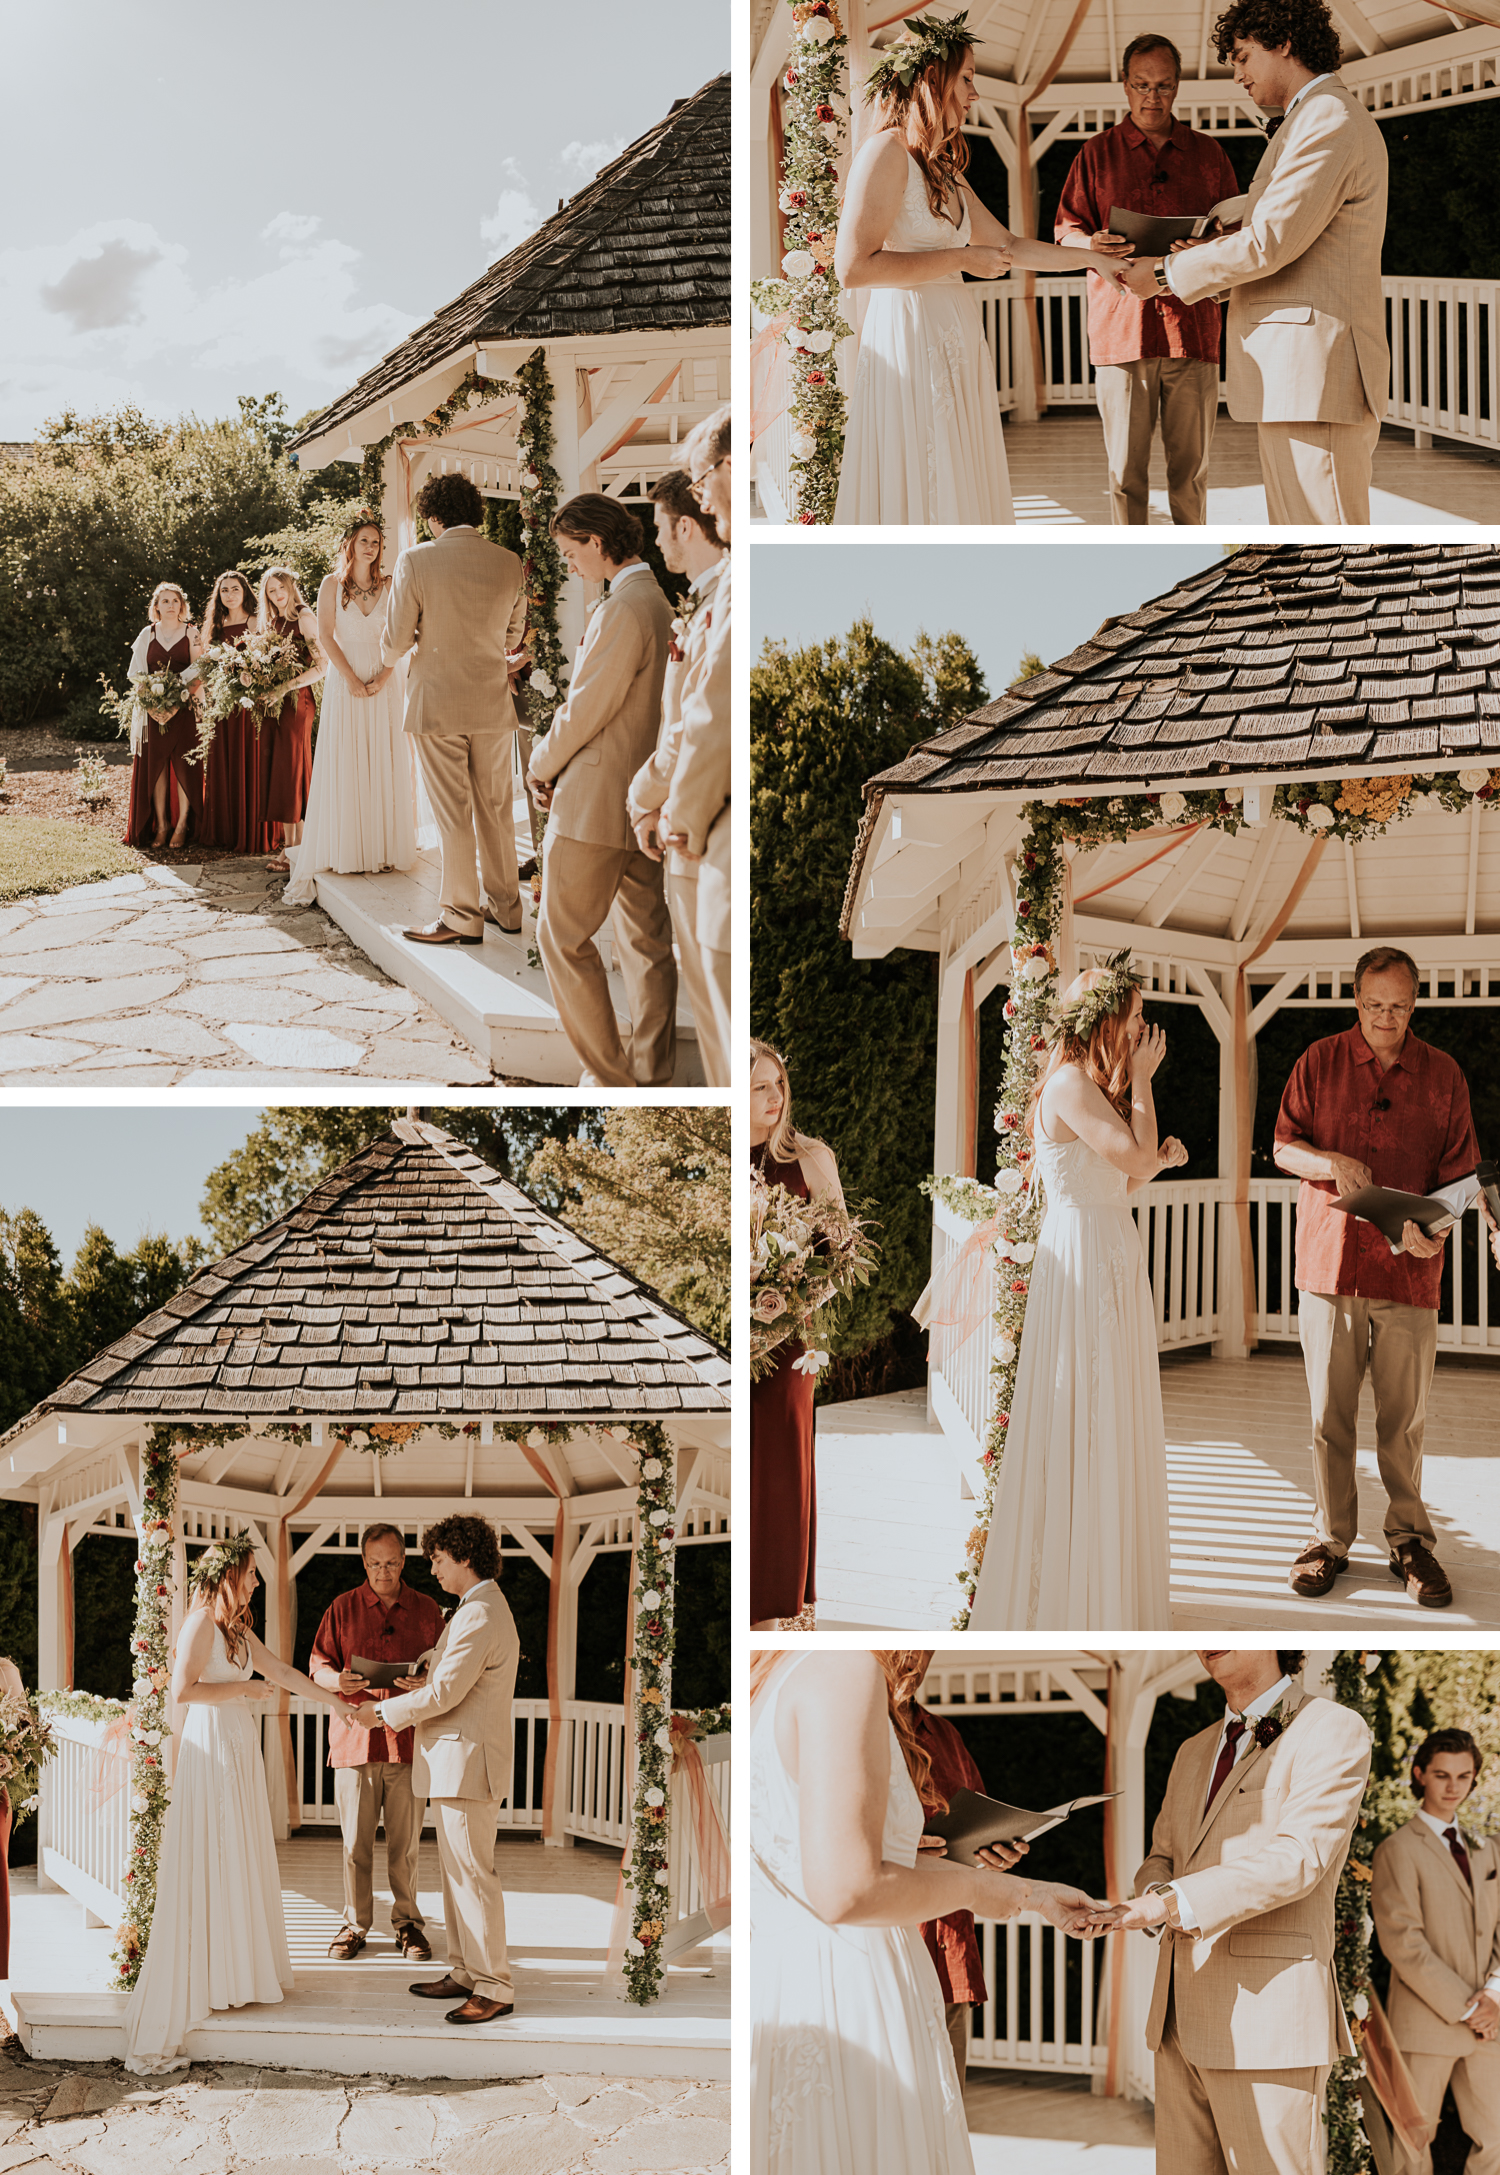 VillageGreenWedding13.jpg